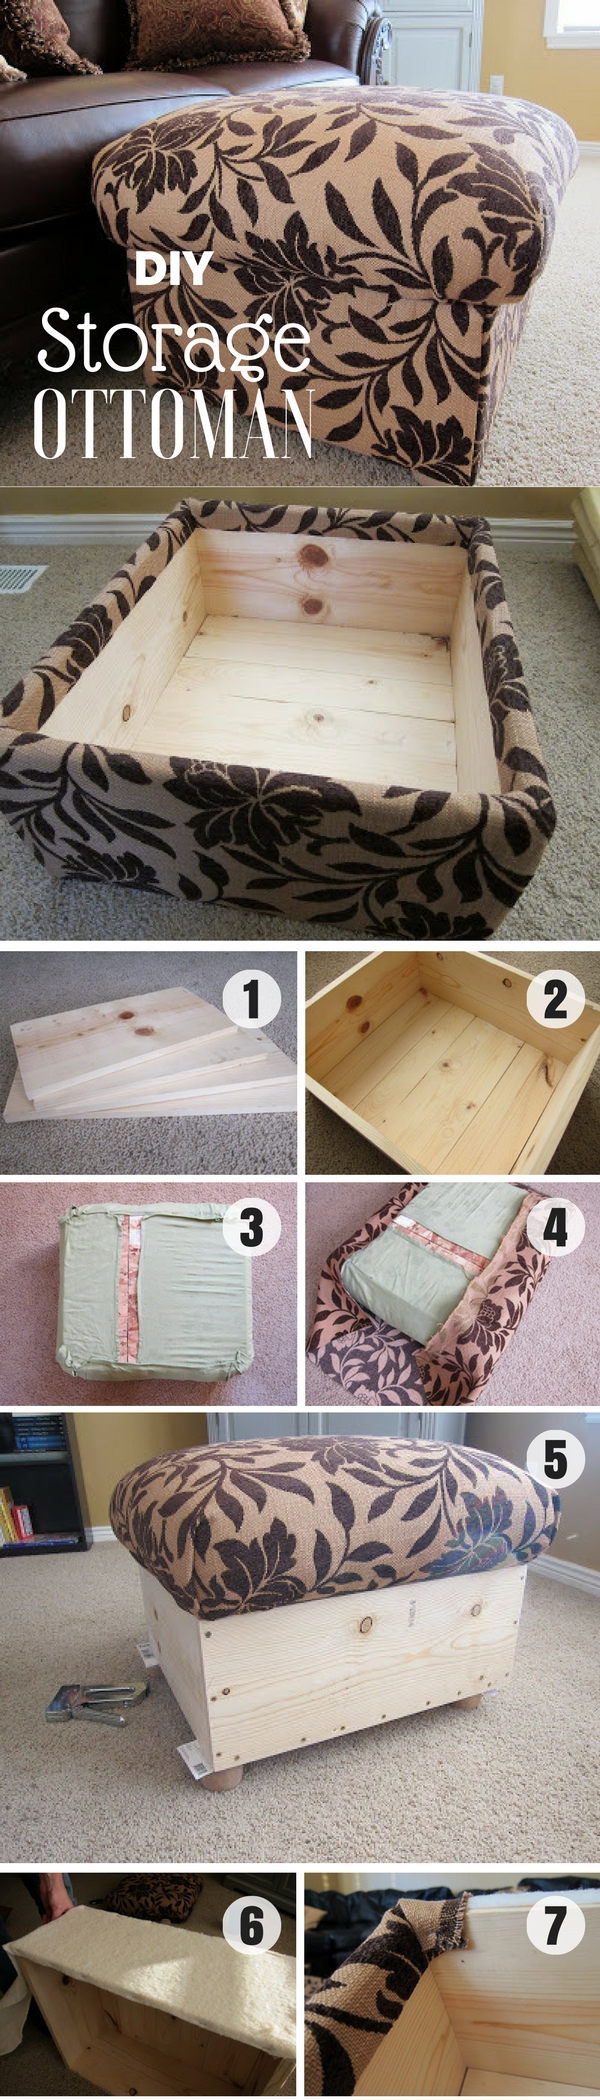 40 Easy DIY Ottoman Ideas You Can Make on a Budget